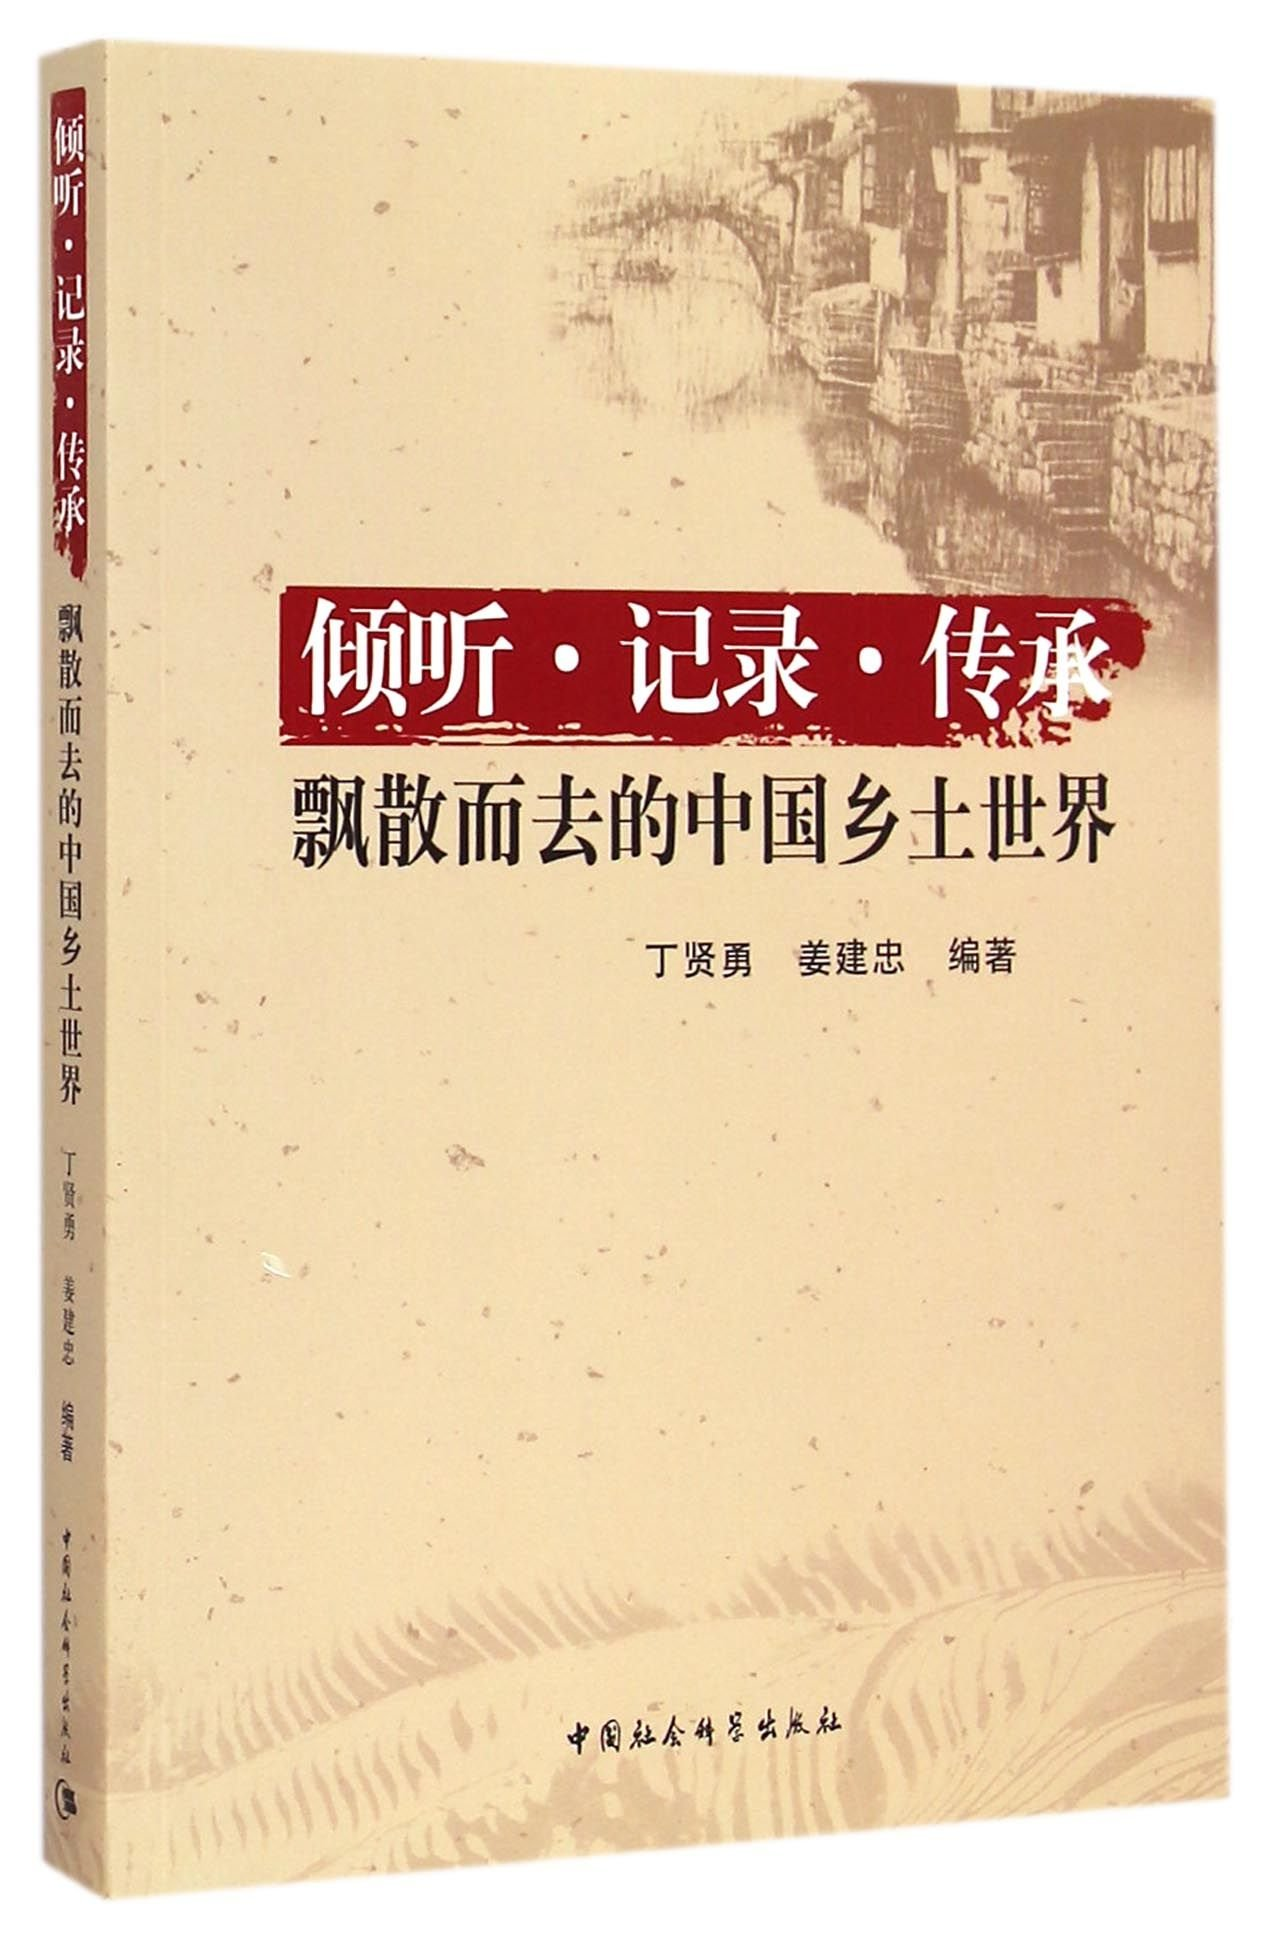 Listen, Record and Inherit (Local World in China That is Drifting Away) (Chinese Edition) pdf